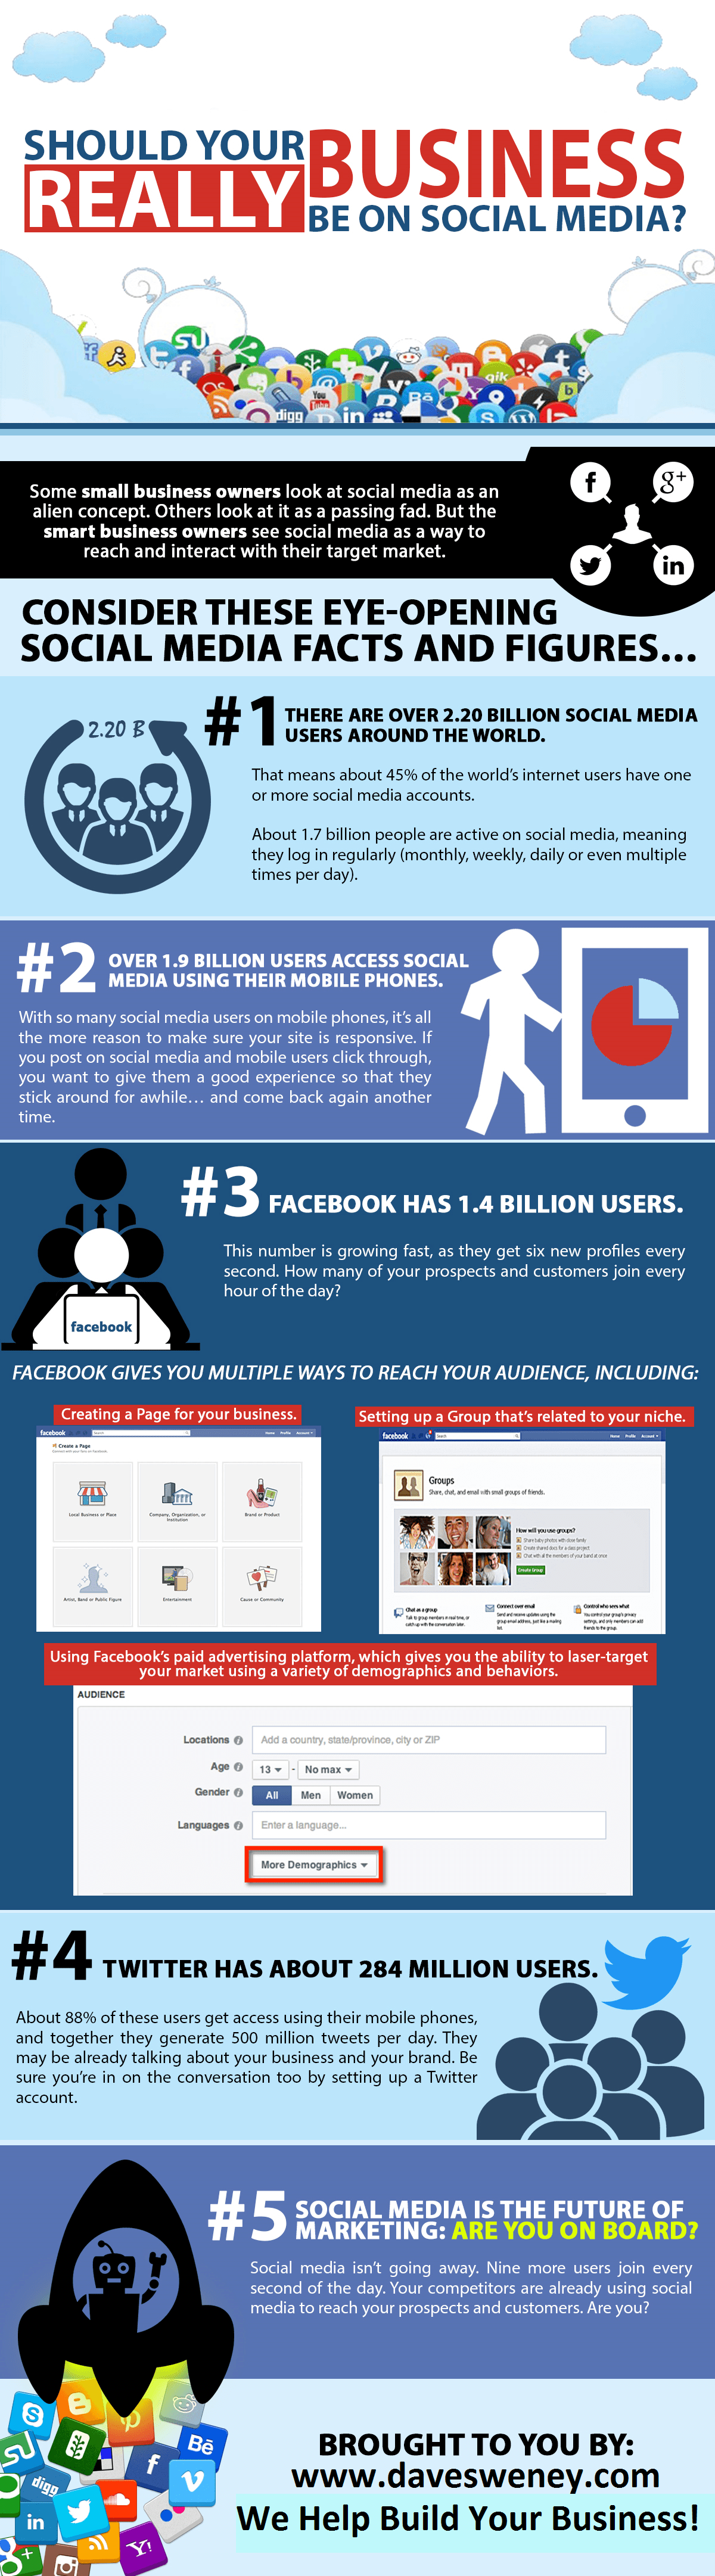 Should Your Business Really Be On Social Media PNG Edited Version - Increase Success and Sales with Social Media in 2016